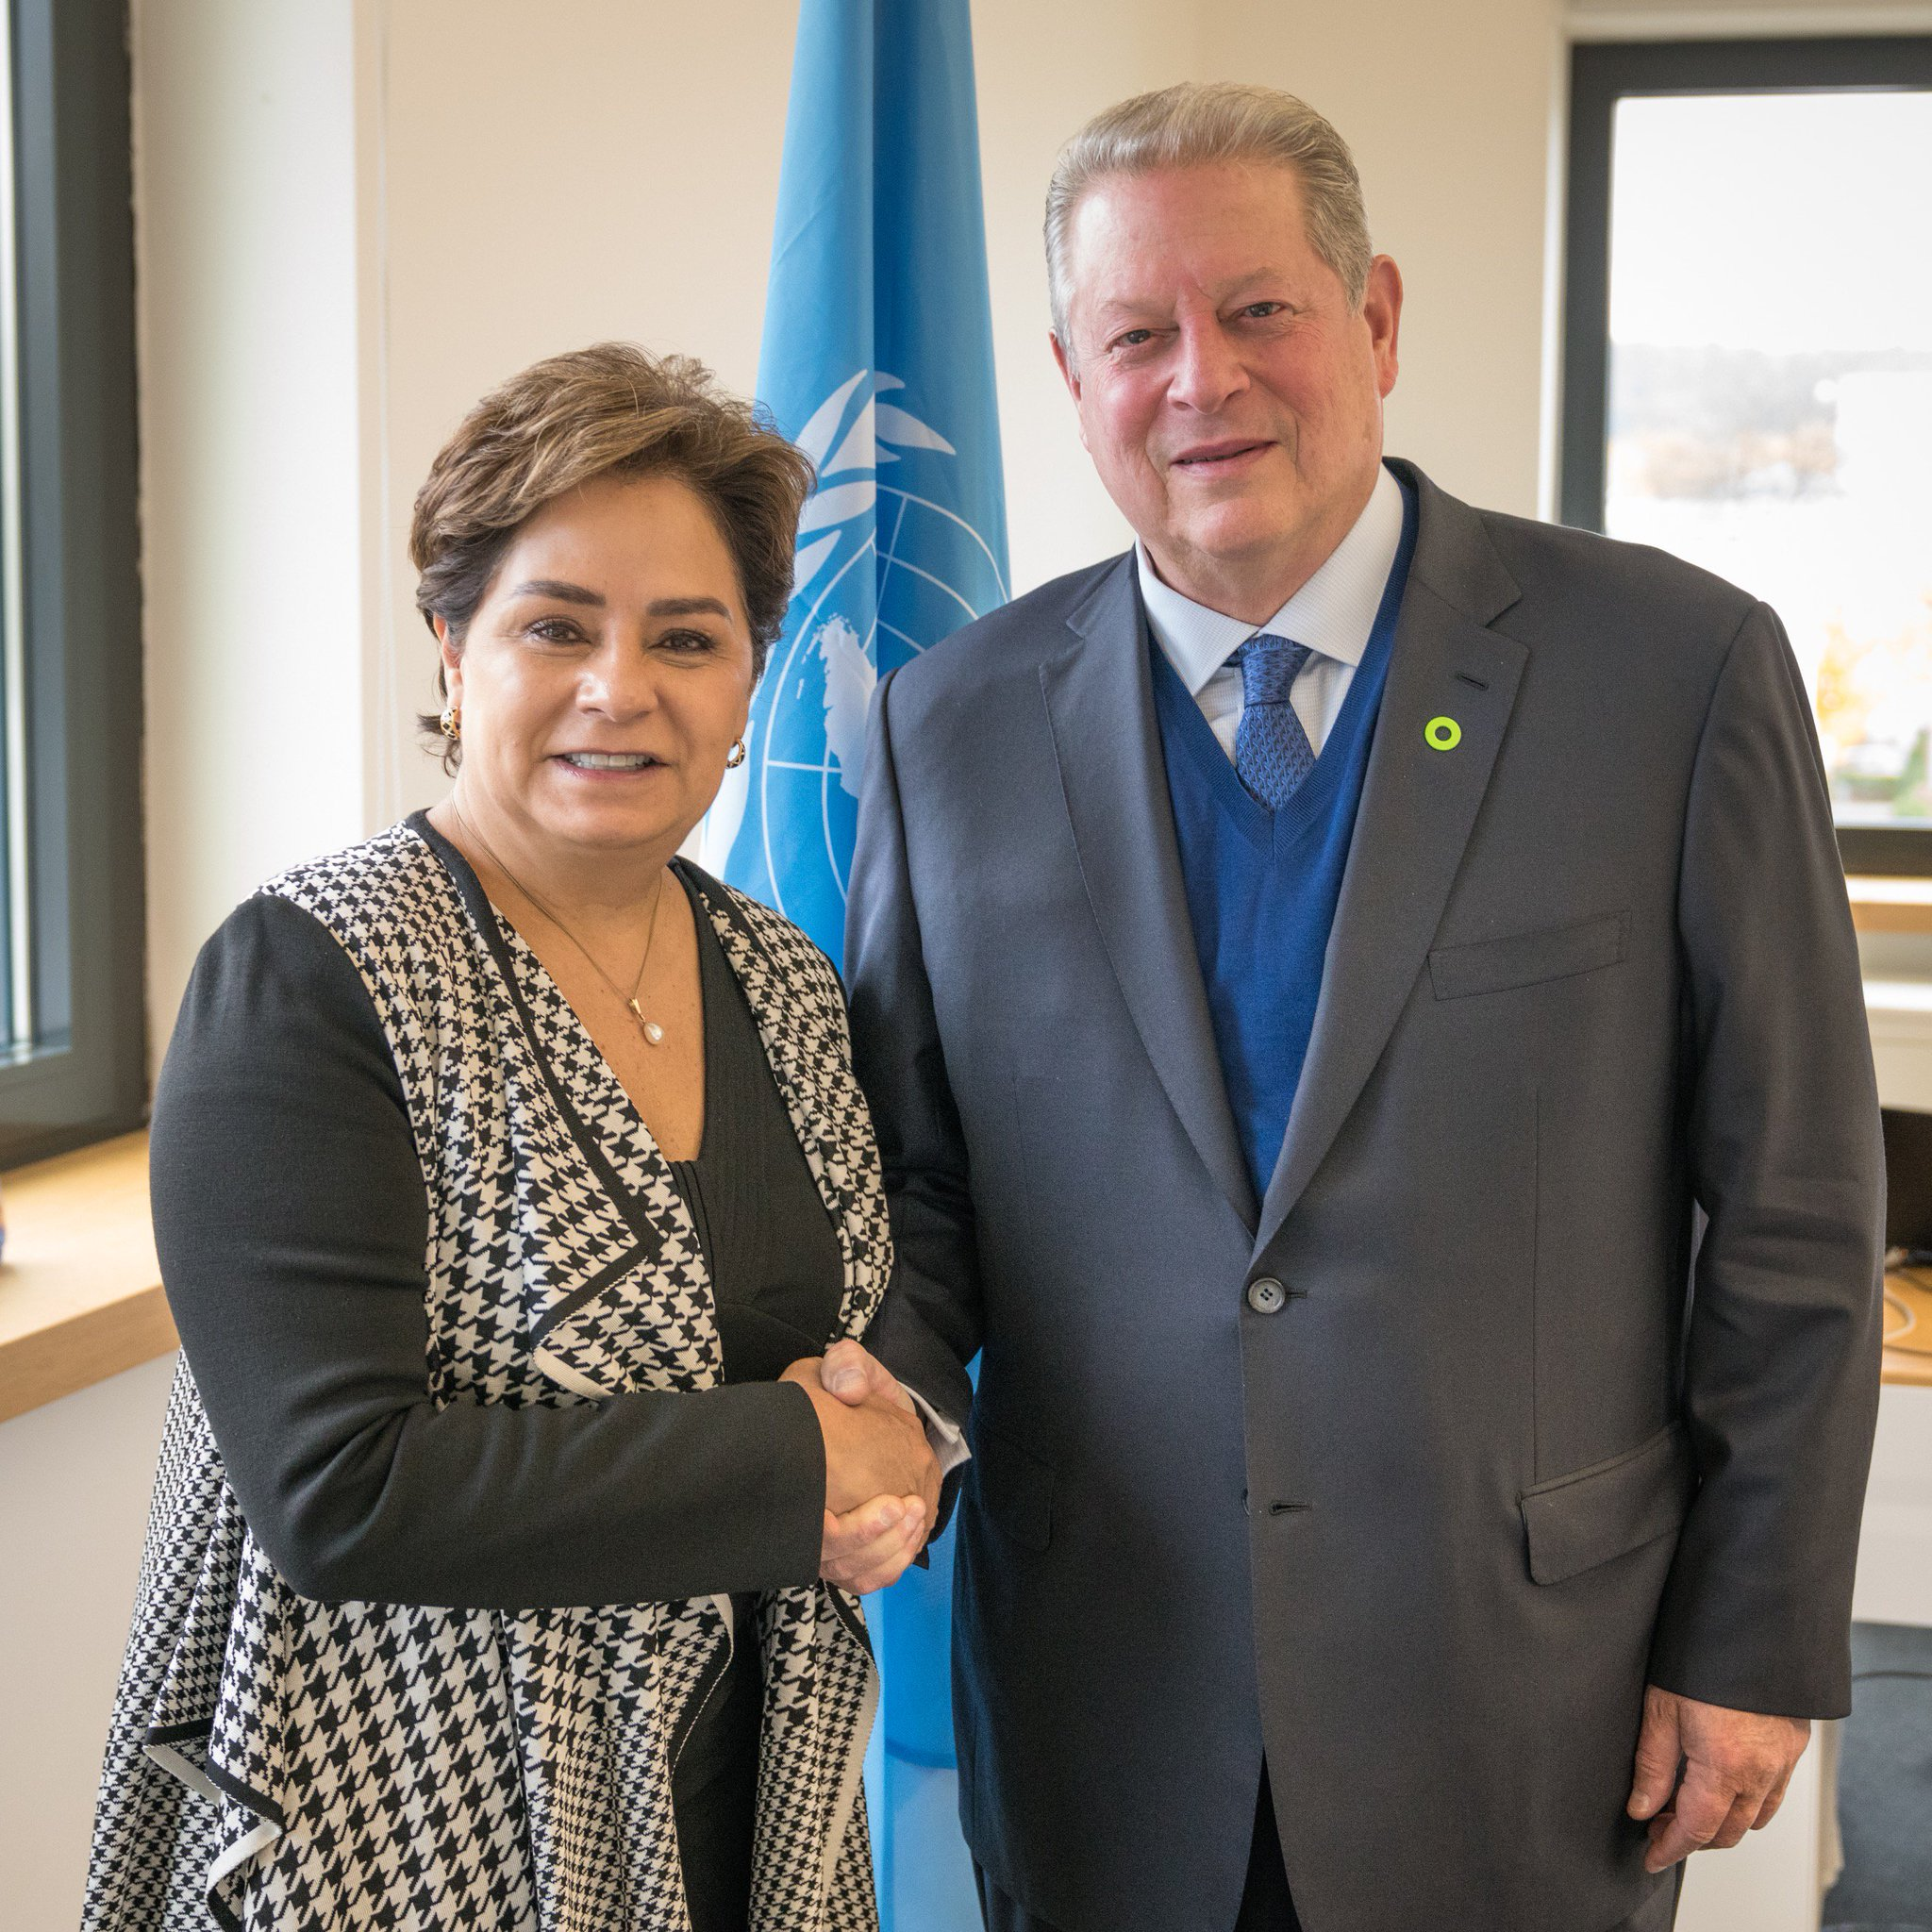 Great meeting with Executive Secretary @PEspinosaC today here at #COP23! https://t.co/cakNSSRPEM